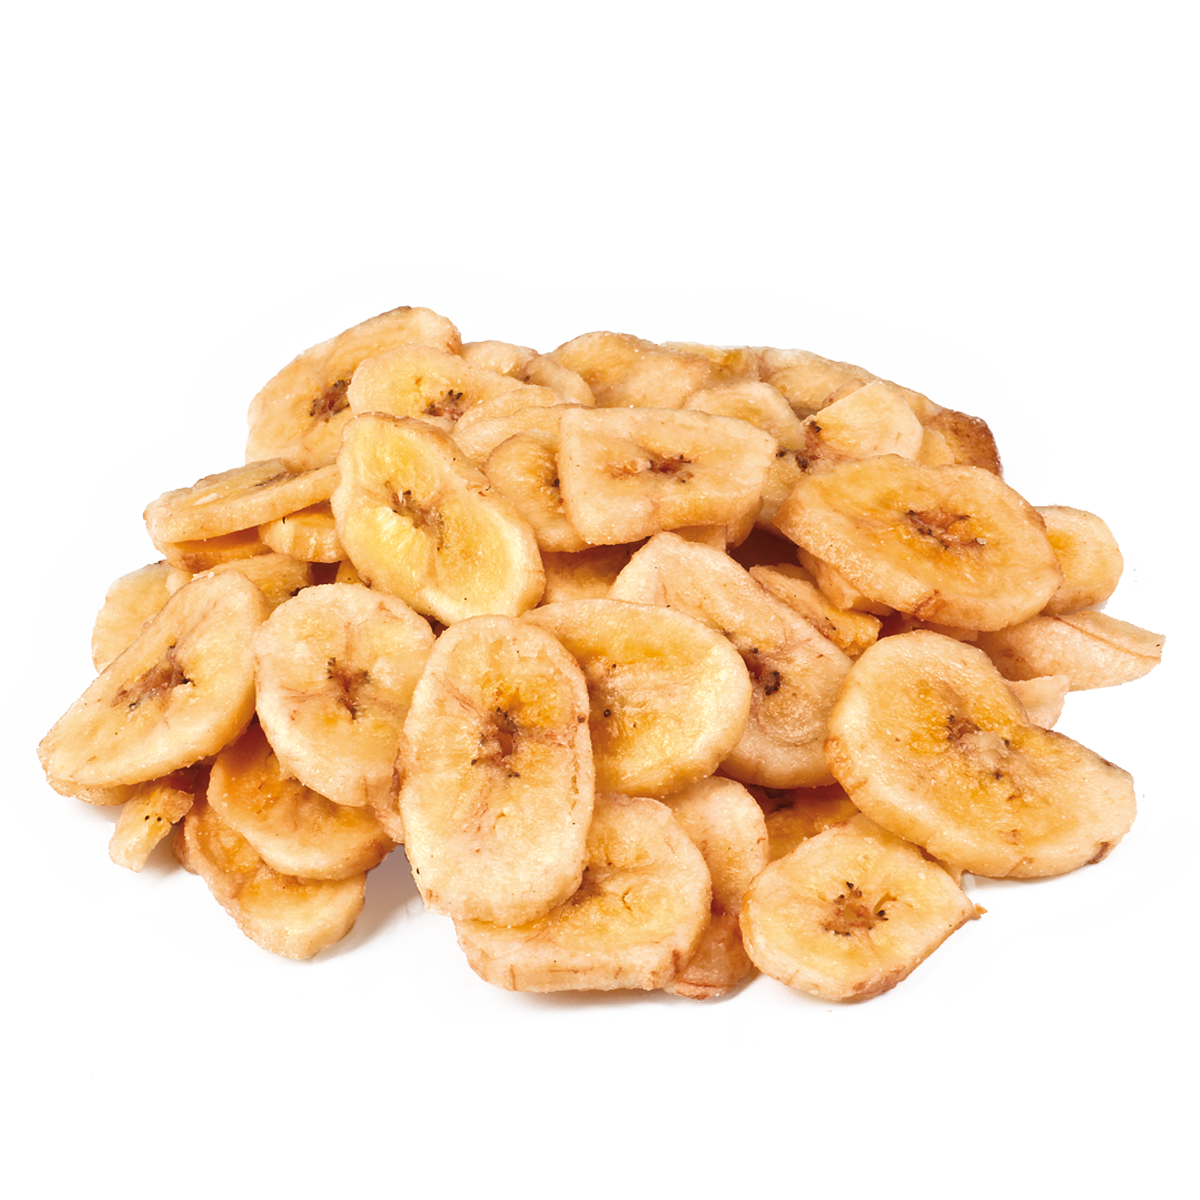 Grain clipart dry fruit. Dried minimal waste grocery